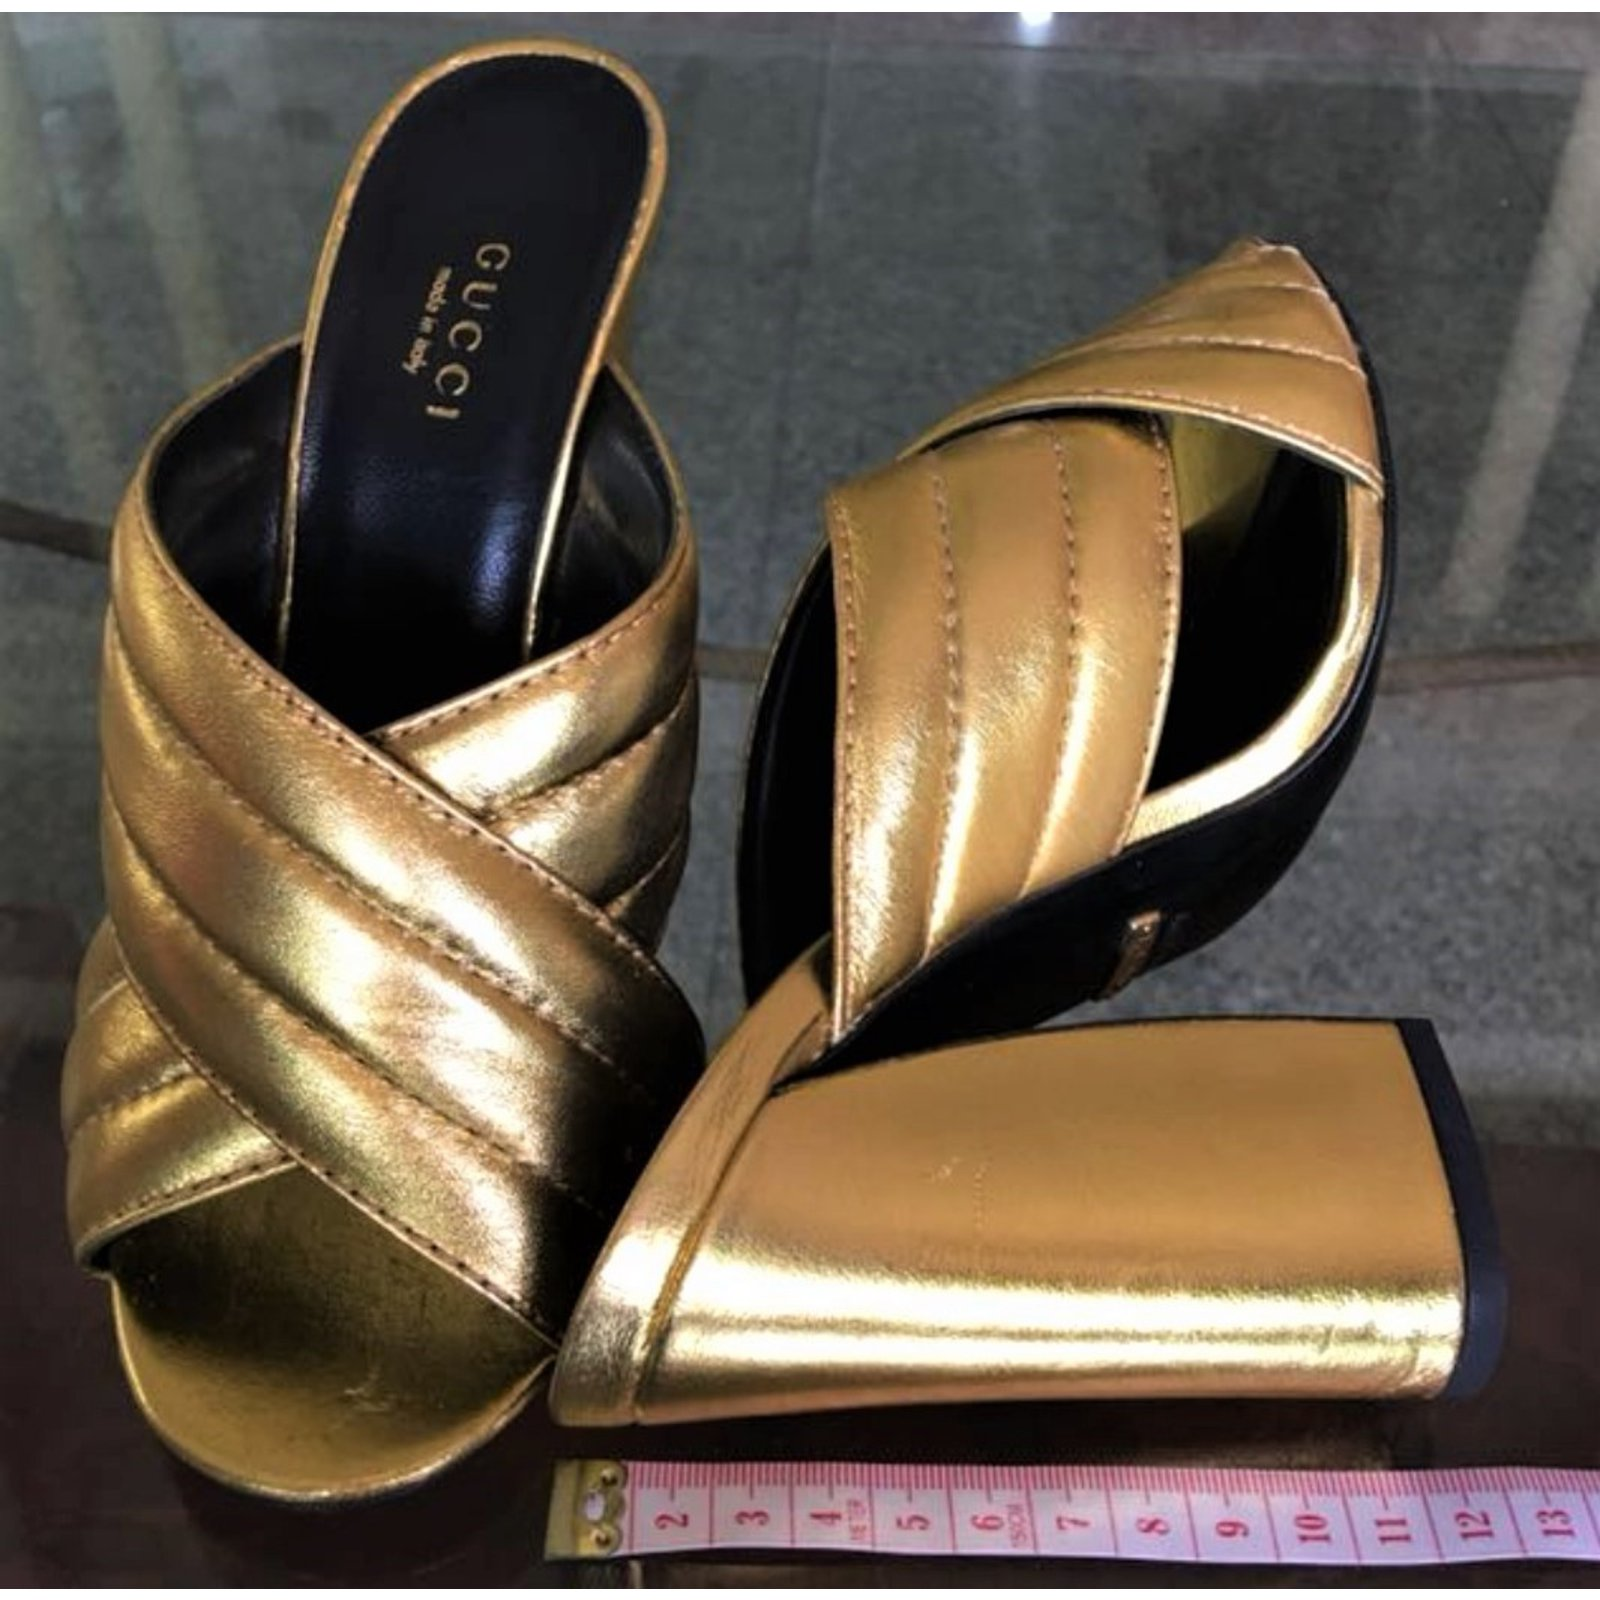 546110135e6 Gucci Gold Webby Mules Sandals Sandals Leather Golden ref.73605 - Joli  Closet